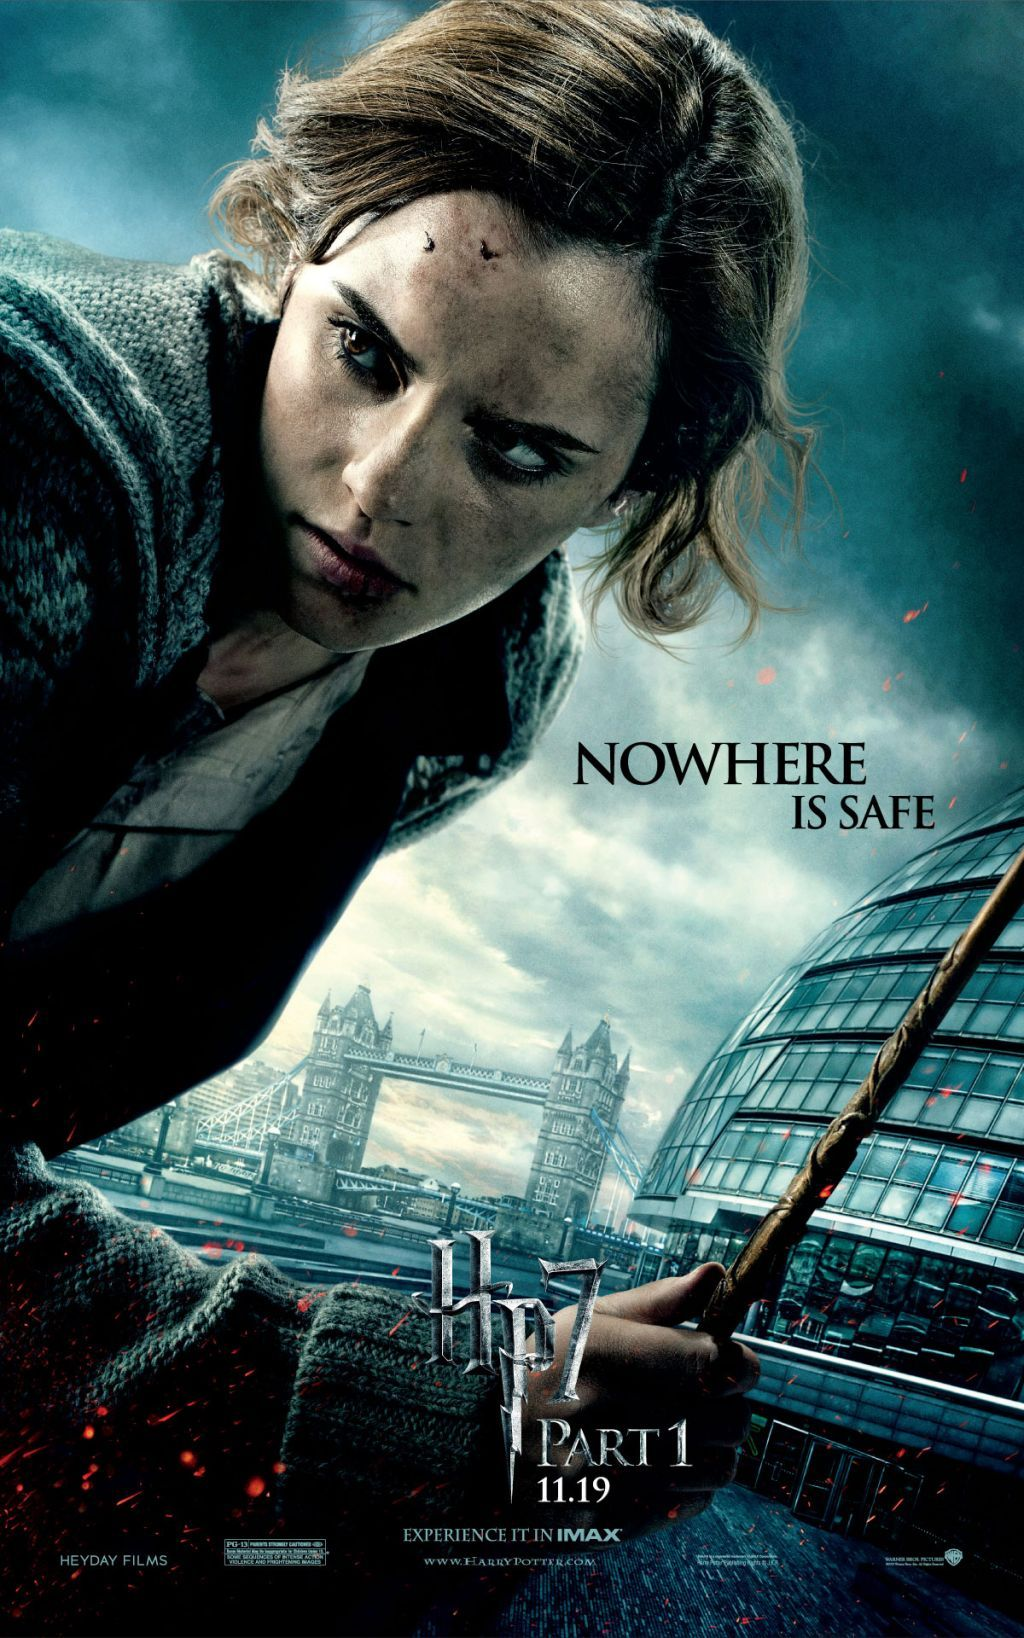 Harry Potter And The Deathly Hallows Part I Movie Posters Emma Watson Harry Potter Deathly Hallows Movie Harry Potter Movie Posters